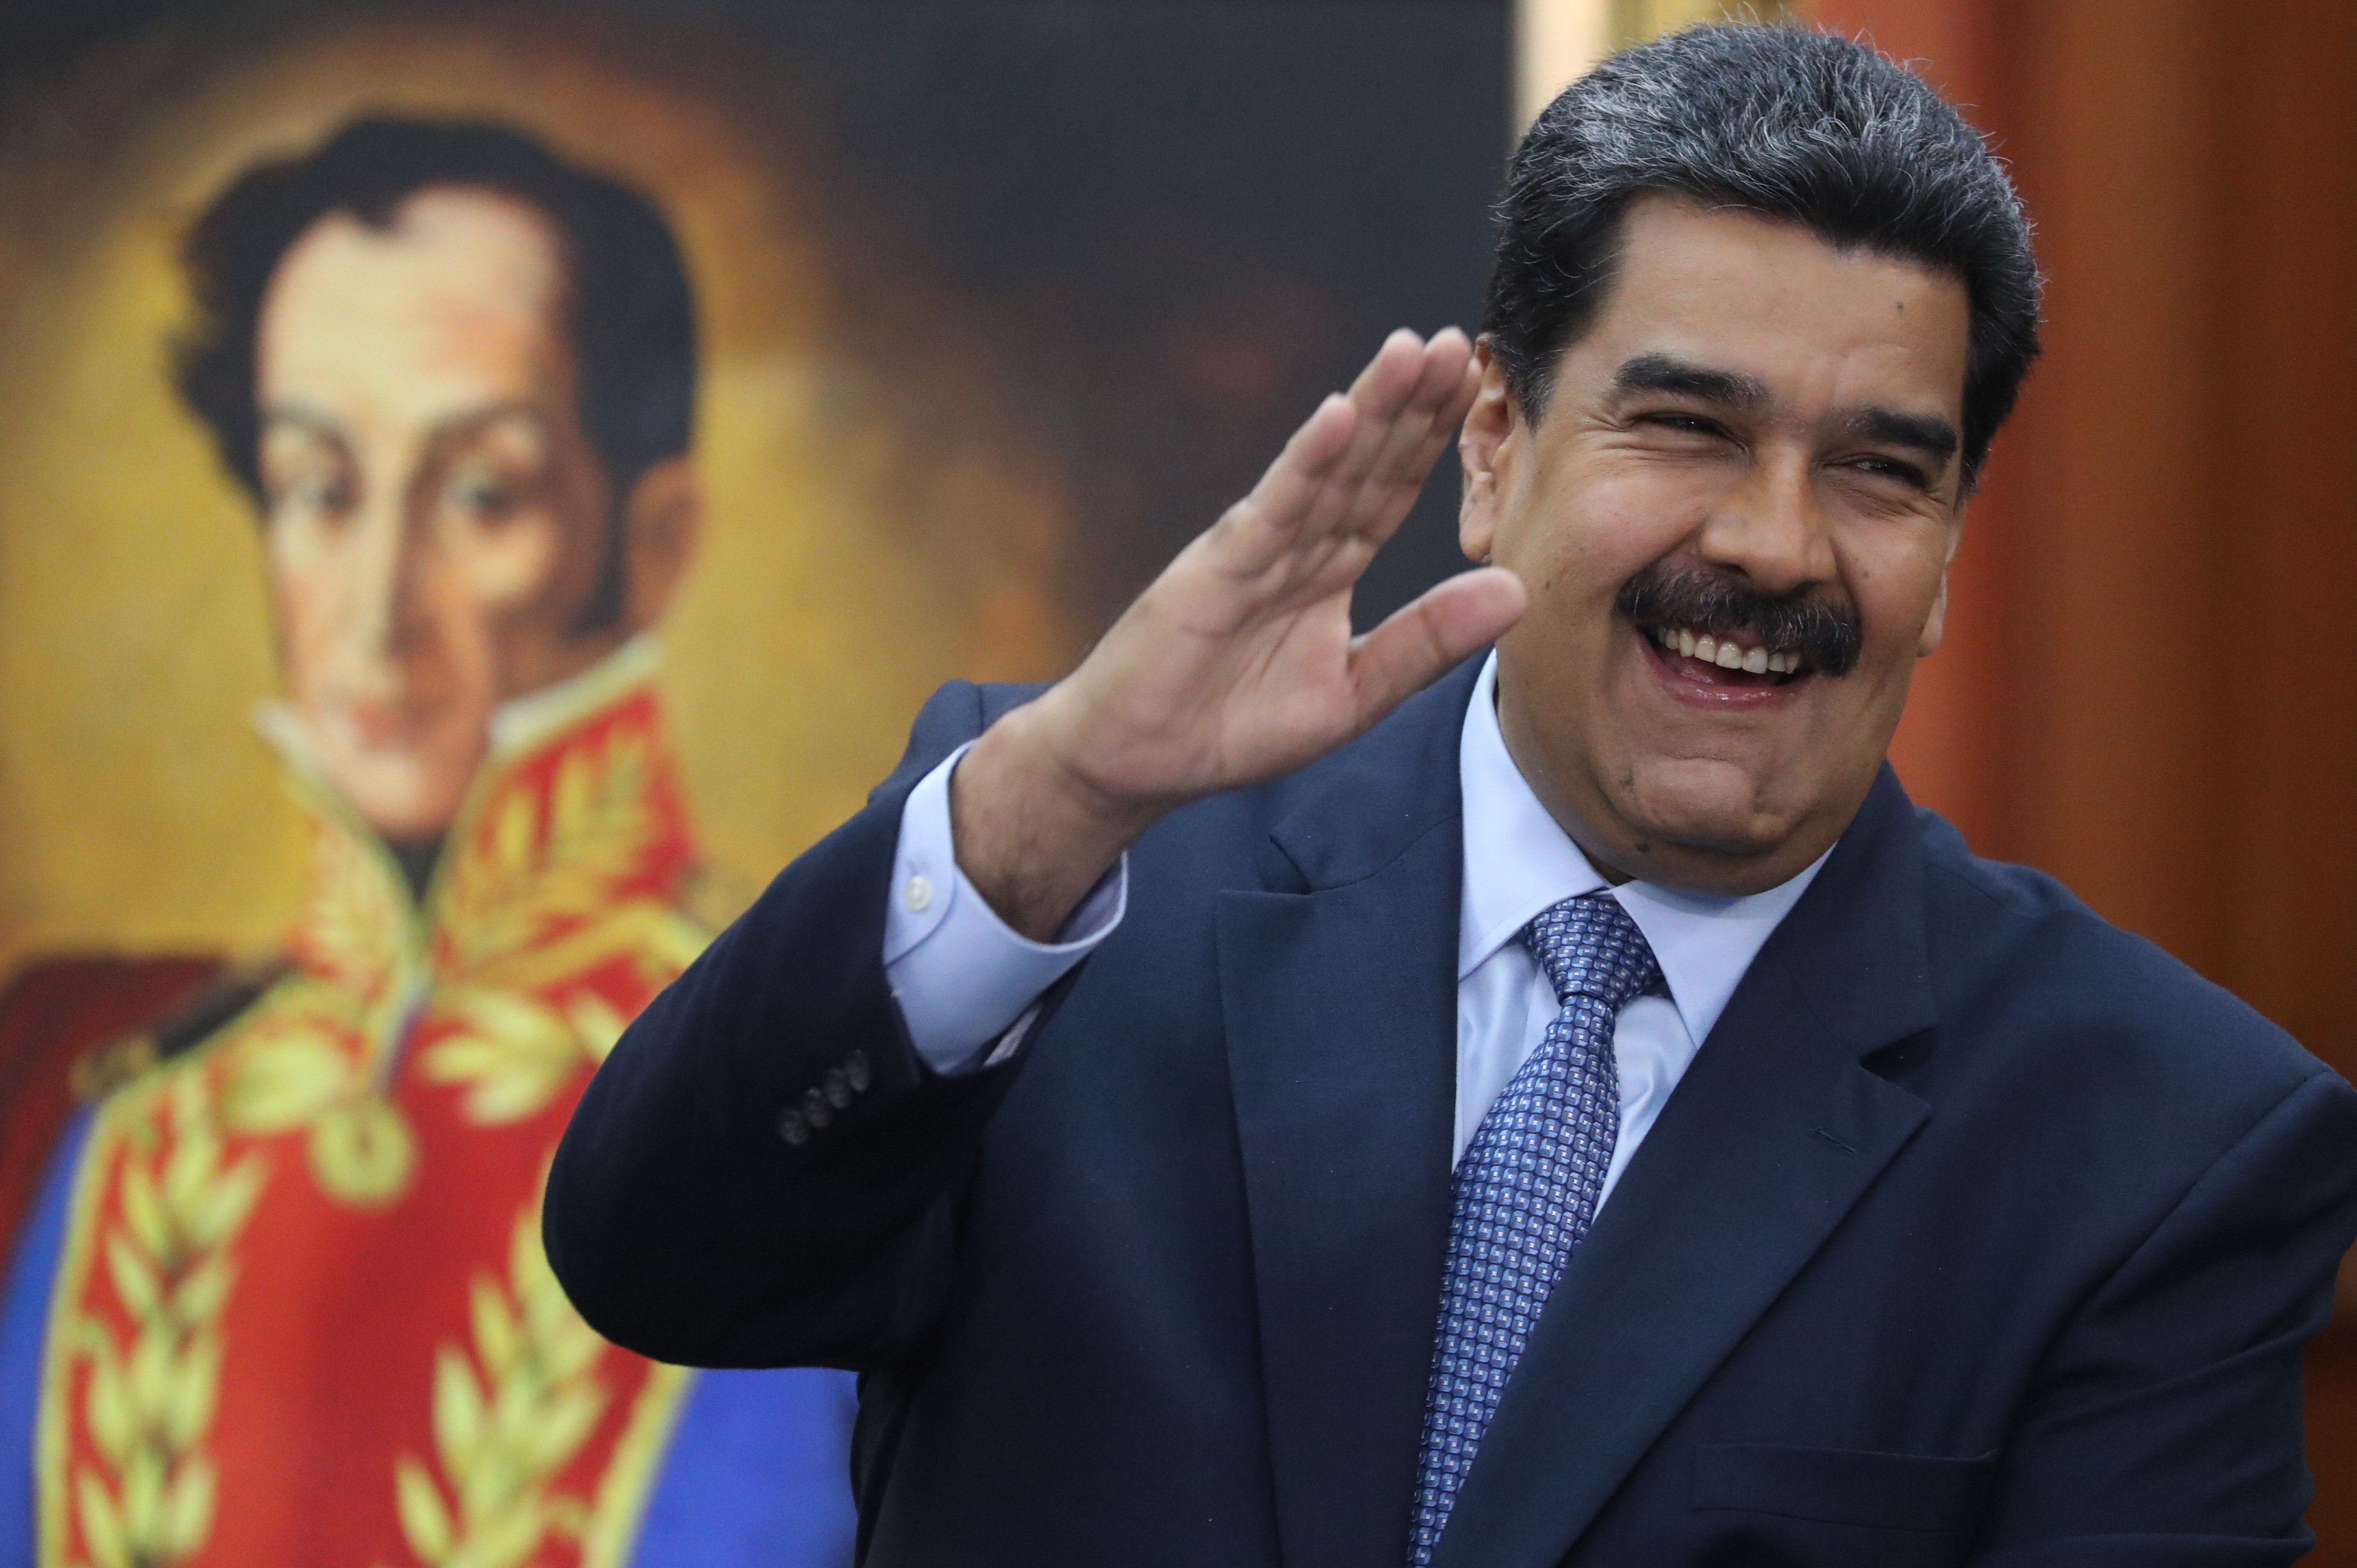 Venezuelan President Nicolas Maduro to celebrate second term as crisis deepens